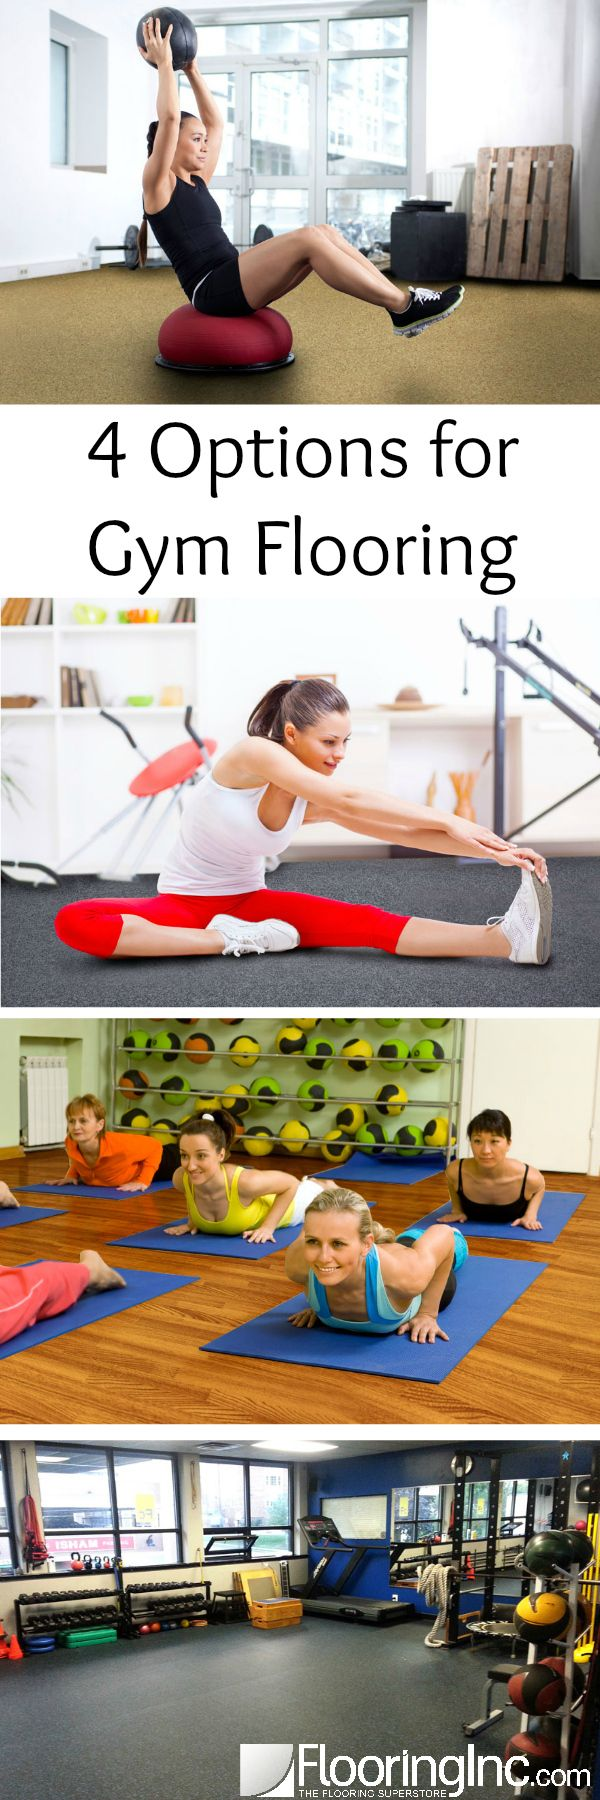 Buying Guide 5 Options for Home Gym Flooring Home gym